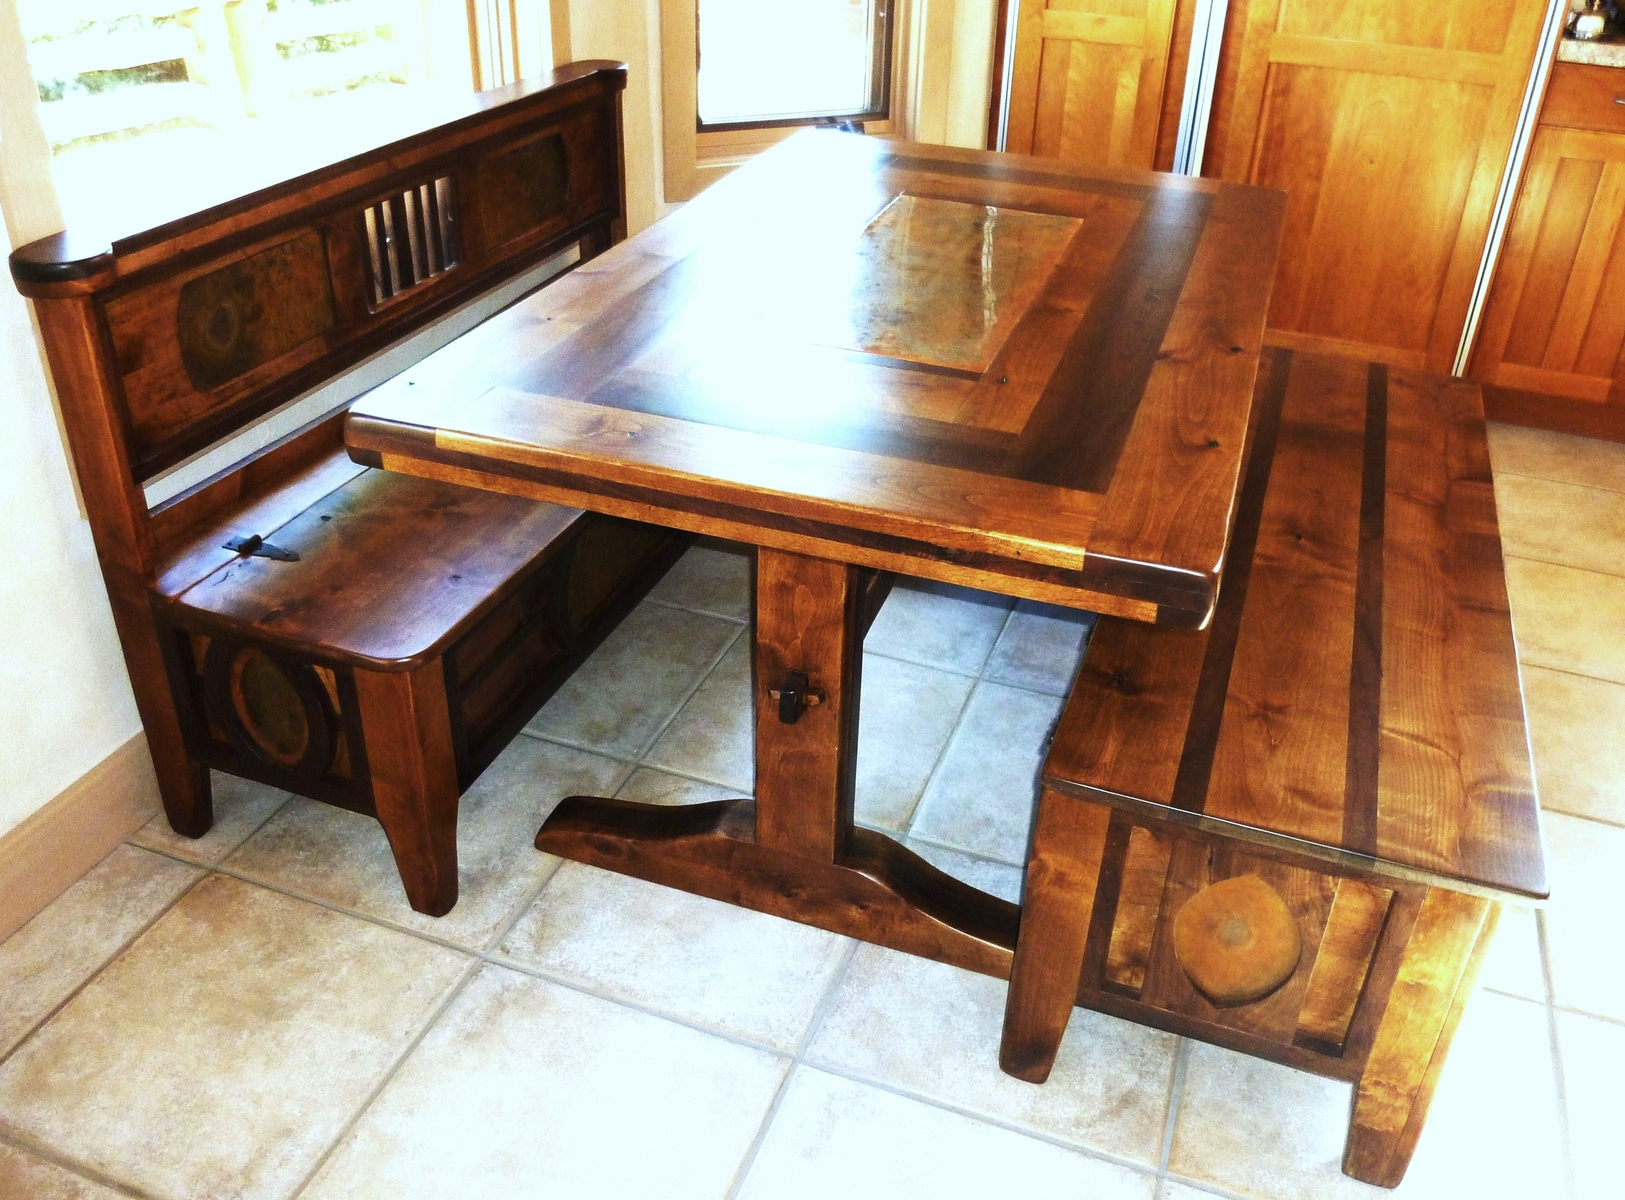 Picture of: Wooden Bench Table for Sale